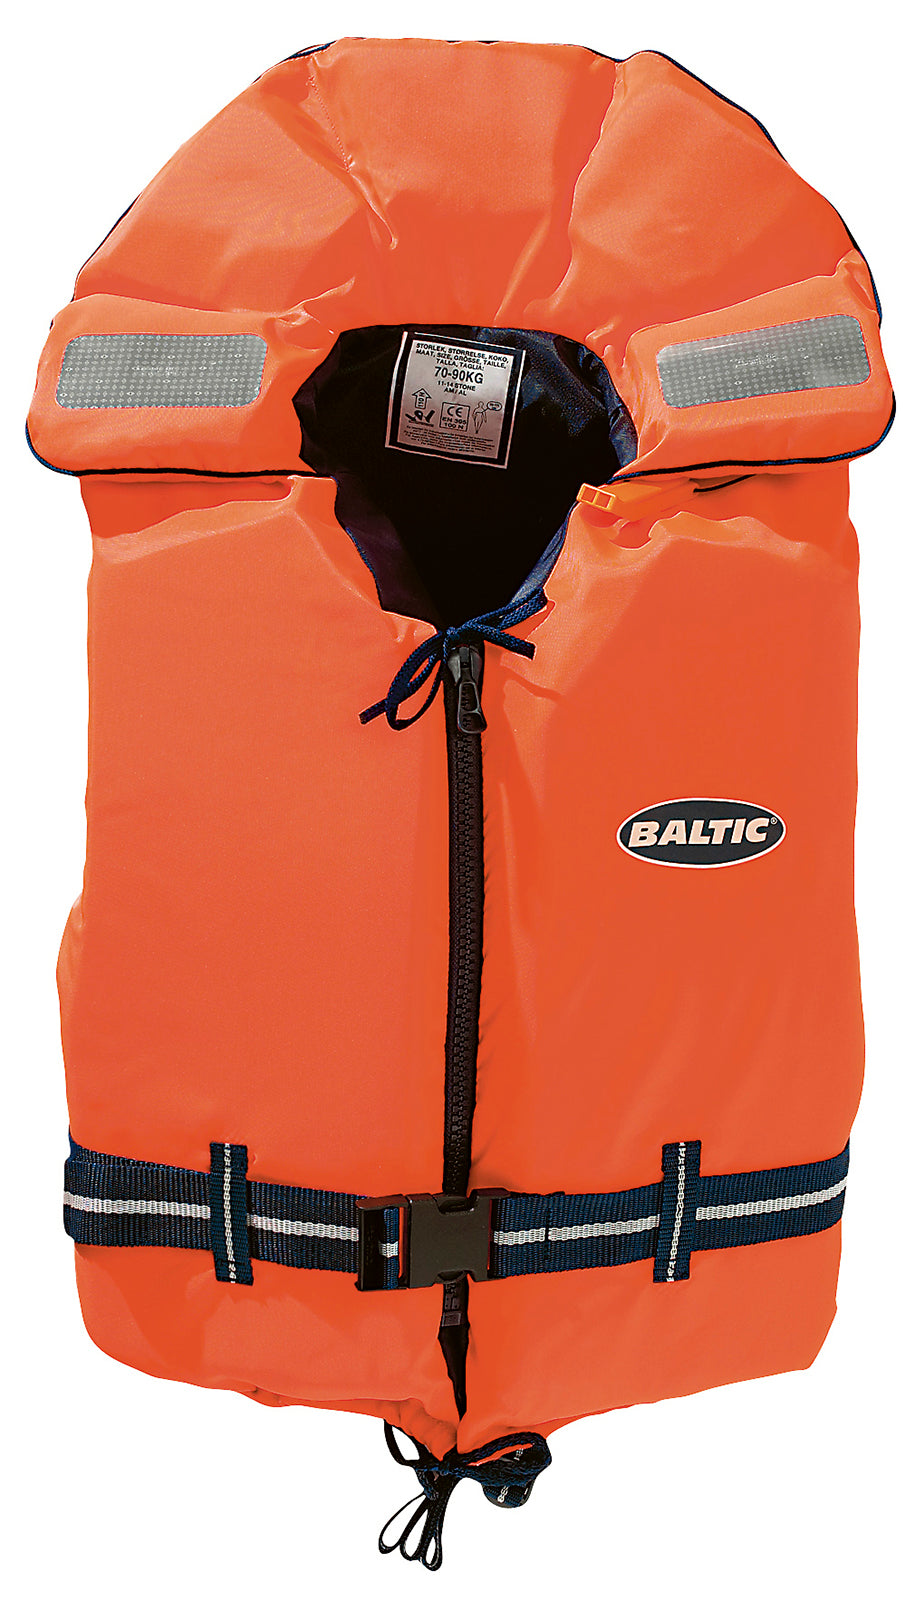 Baltic Children's Lifejacket 15-30kg